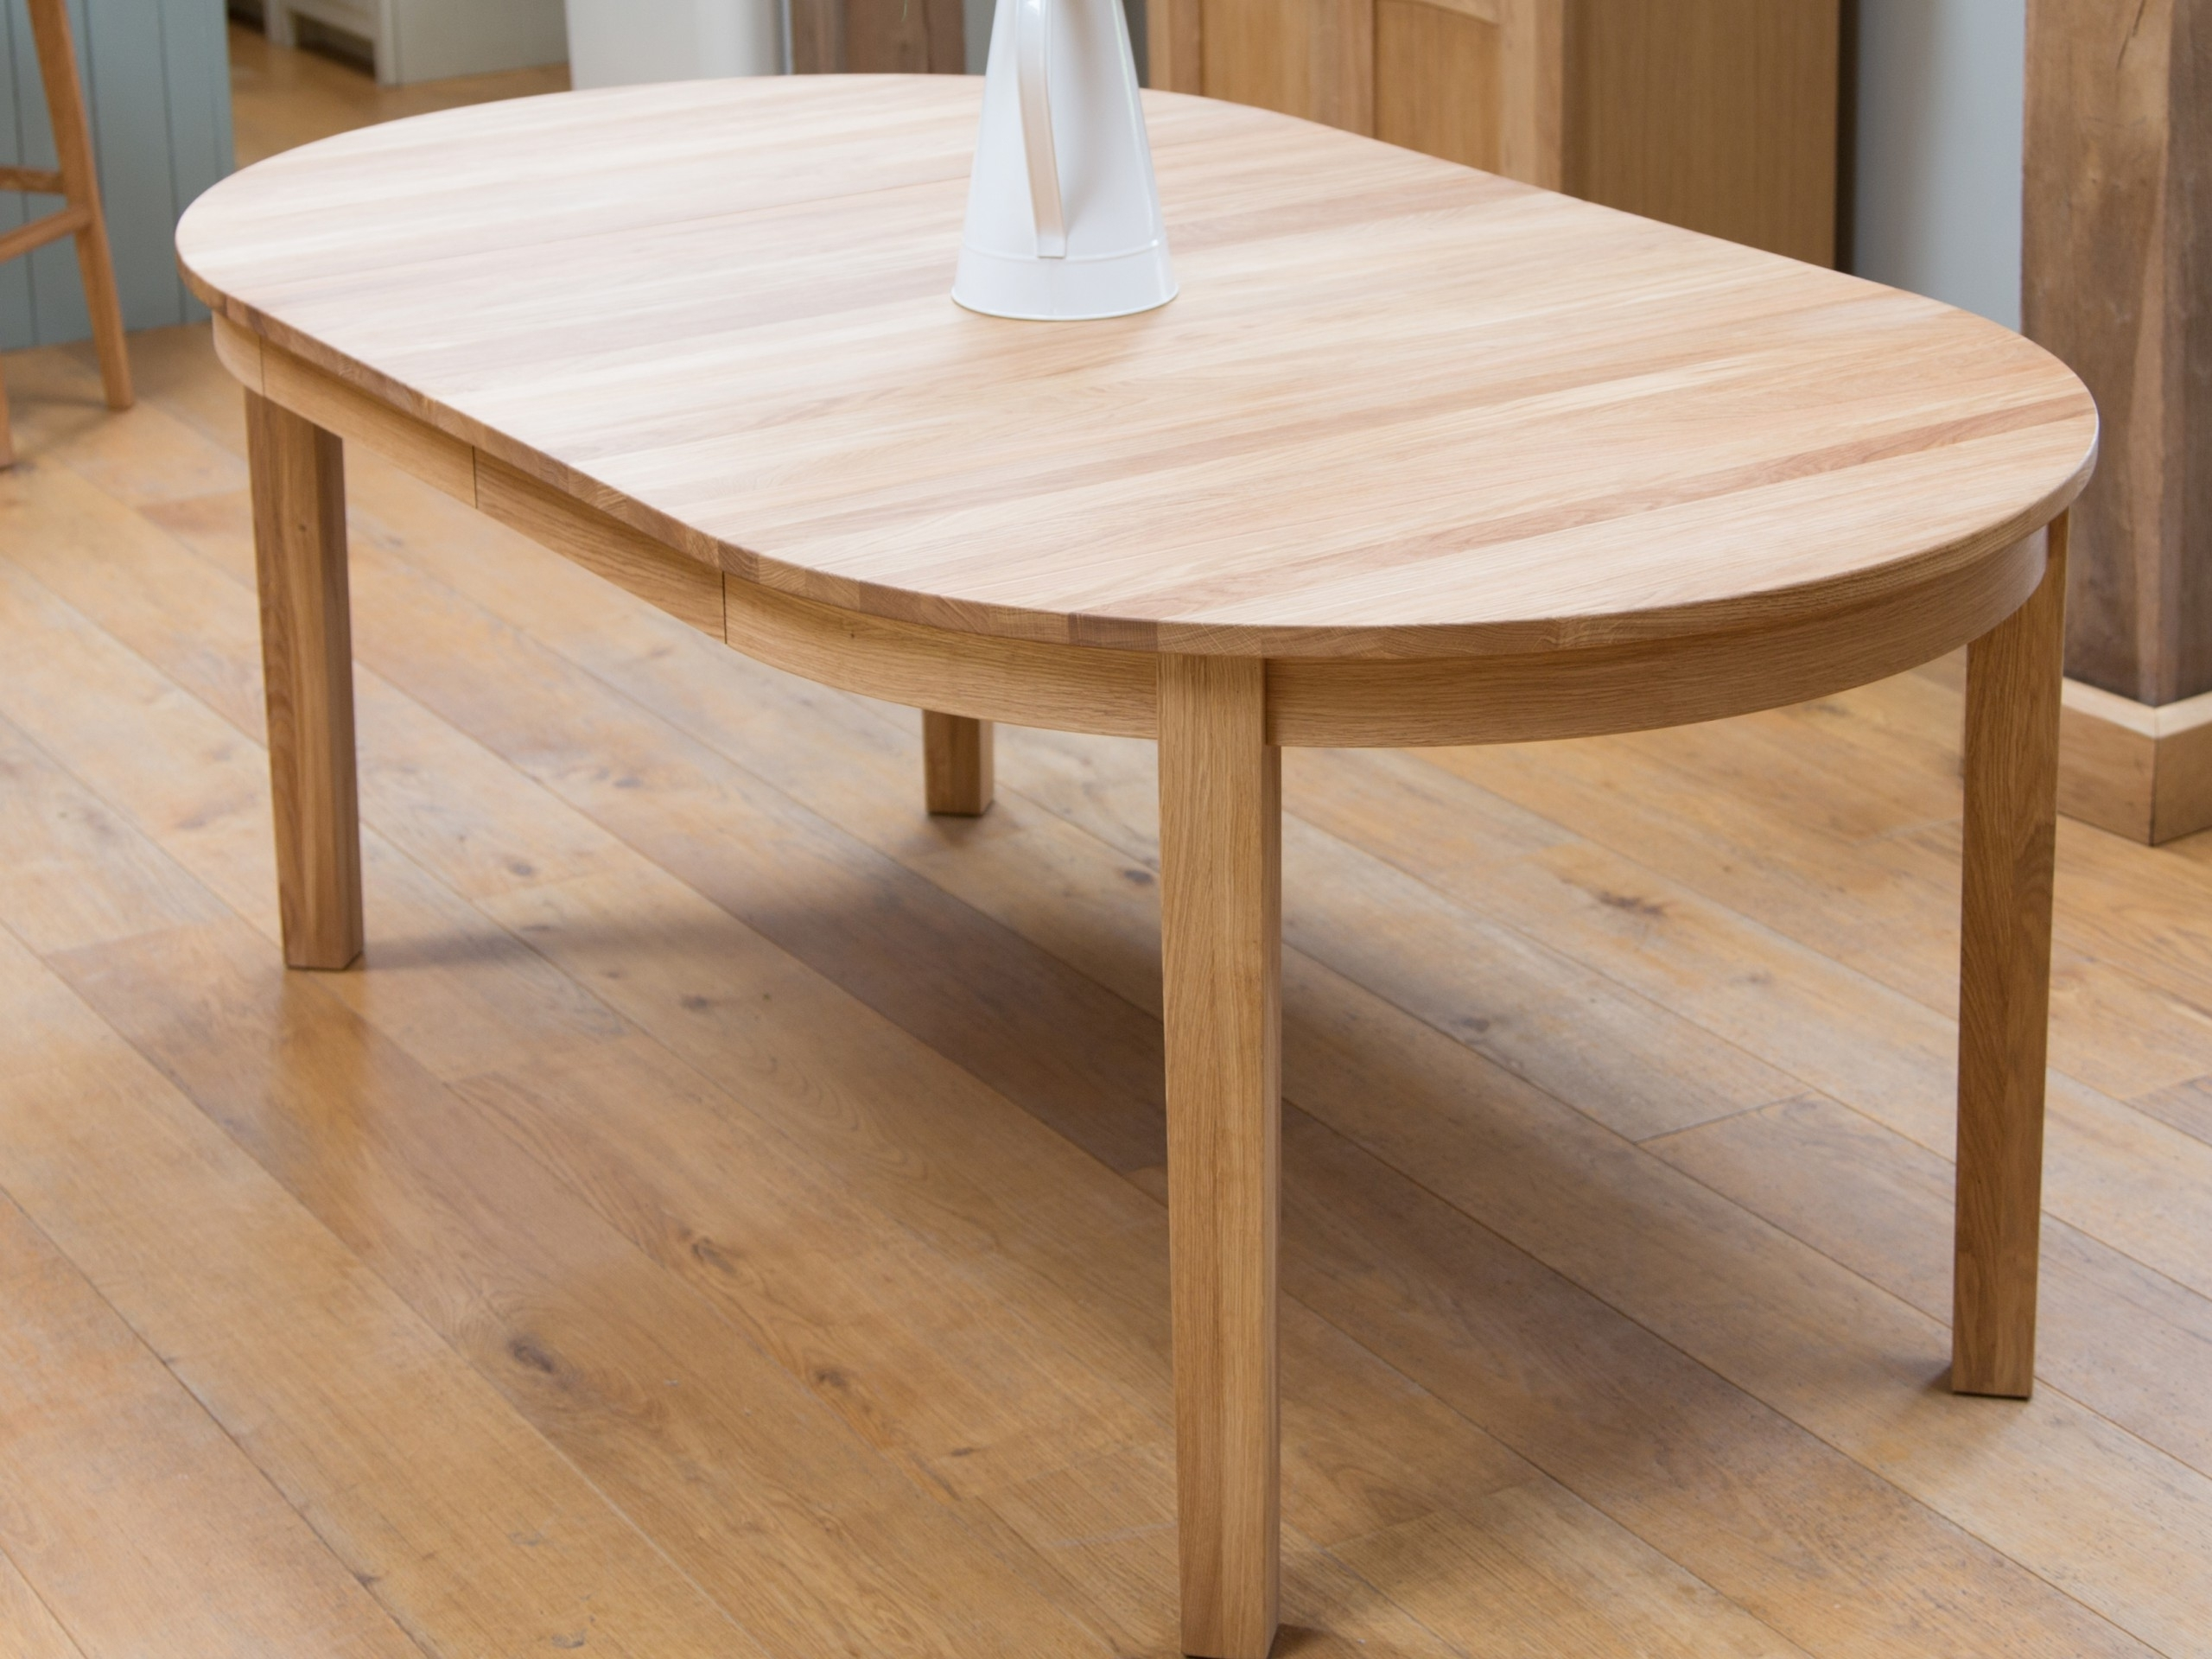 Round Extendable Dining Table Modern – Round Extendable Dining Table Regarding Recent Extendable Round Dining Tables (View 20 of 25)